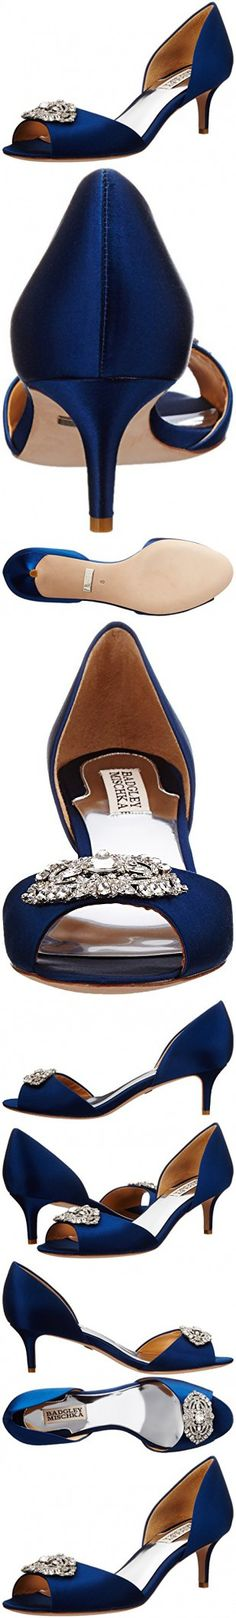 Badgley Mischka Women's Petrina D'Orsay Pump,Navy,8.5 M US